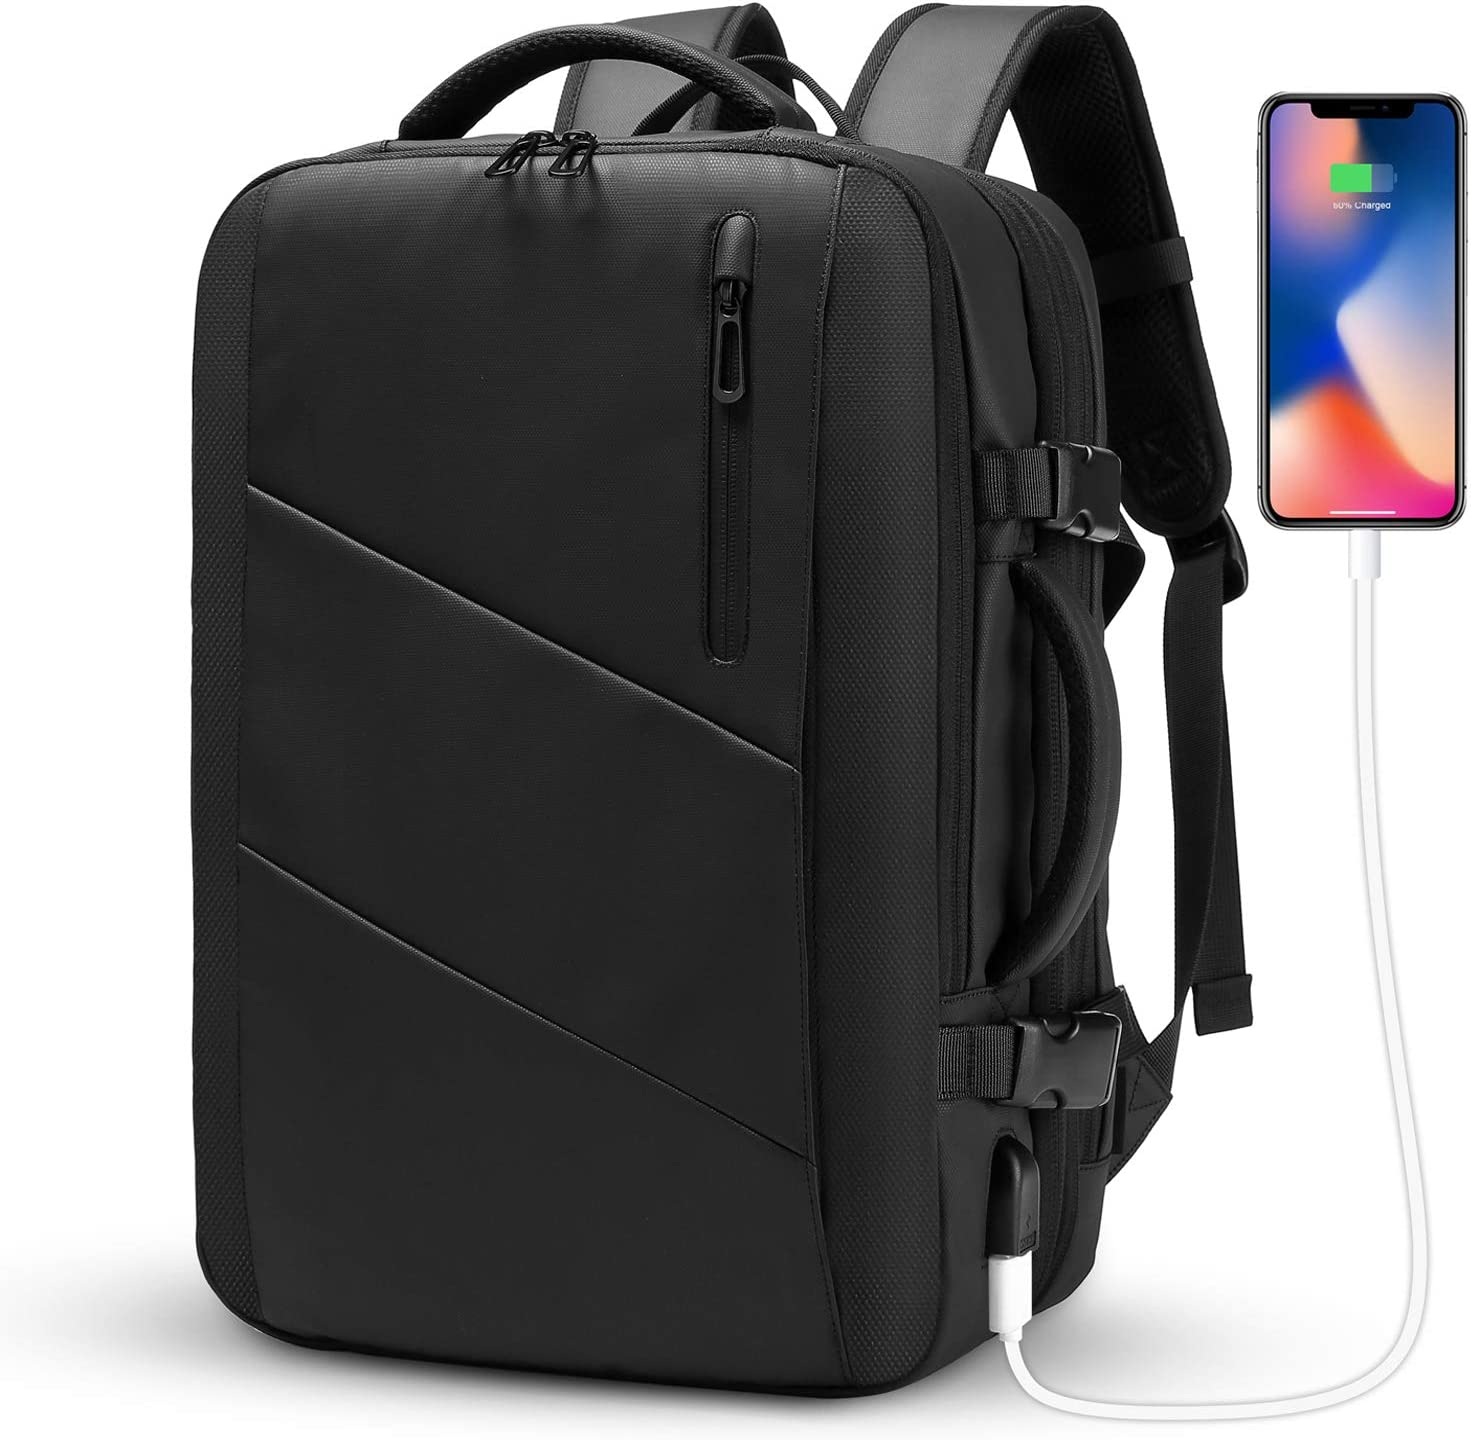 The Travel Backpack,WUAYUR 15.6inch Anti Theft Laptop Backpack travel product recommended by Jessie Synan on Lifney.